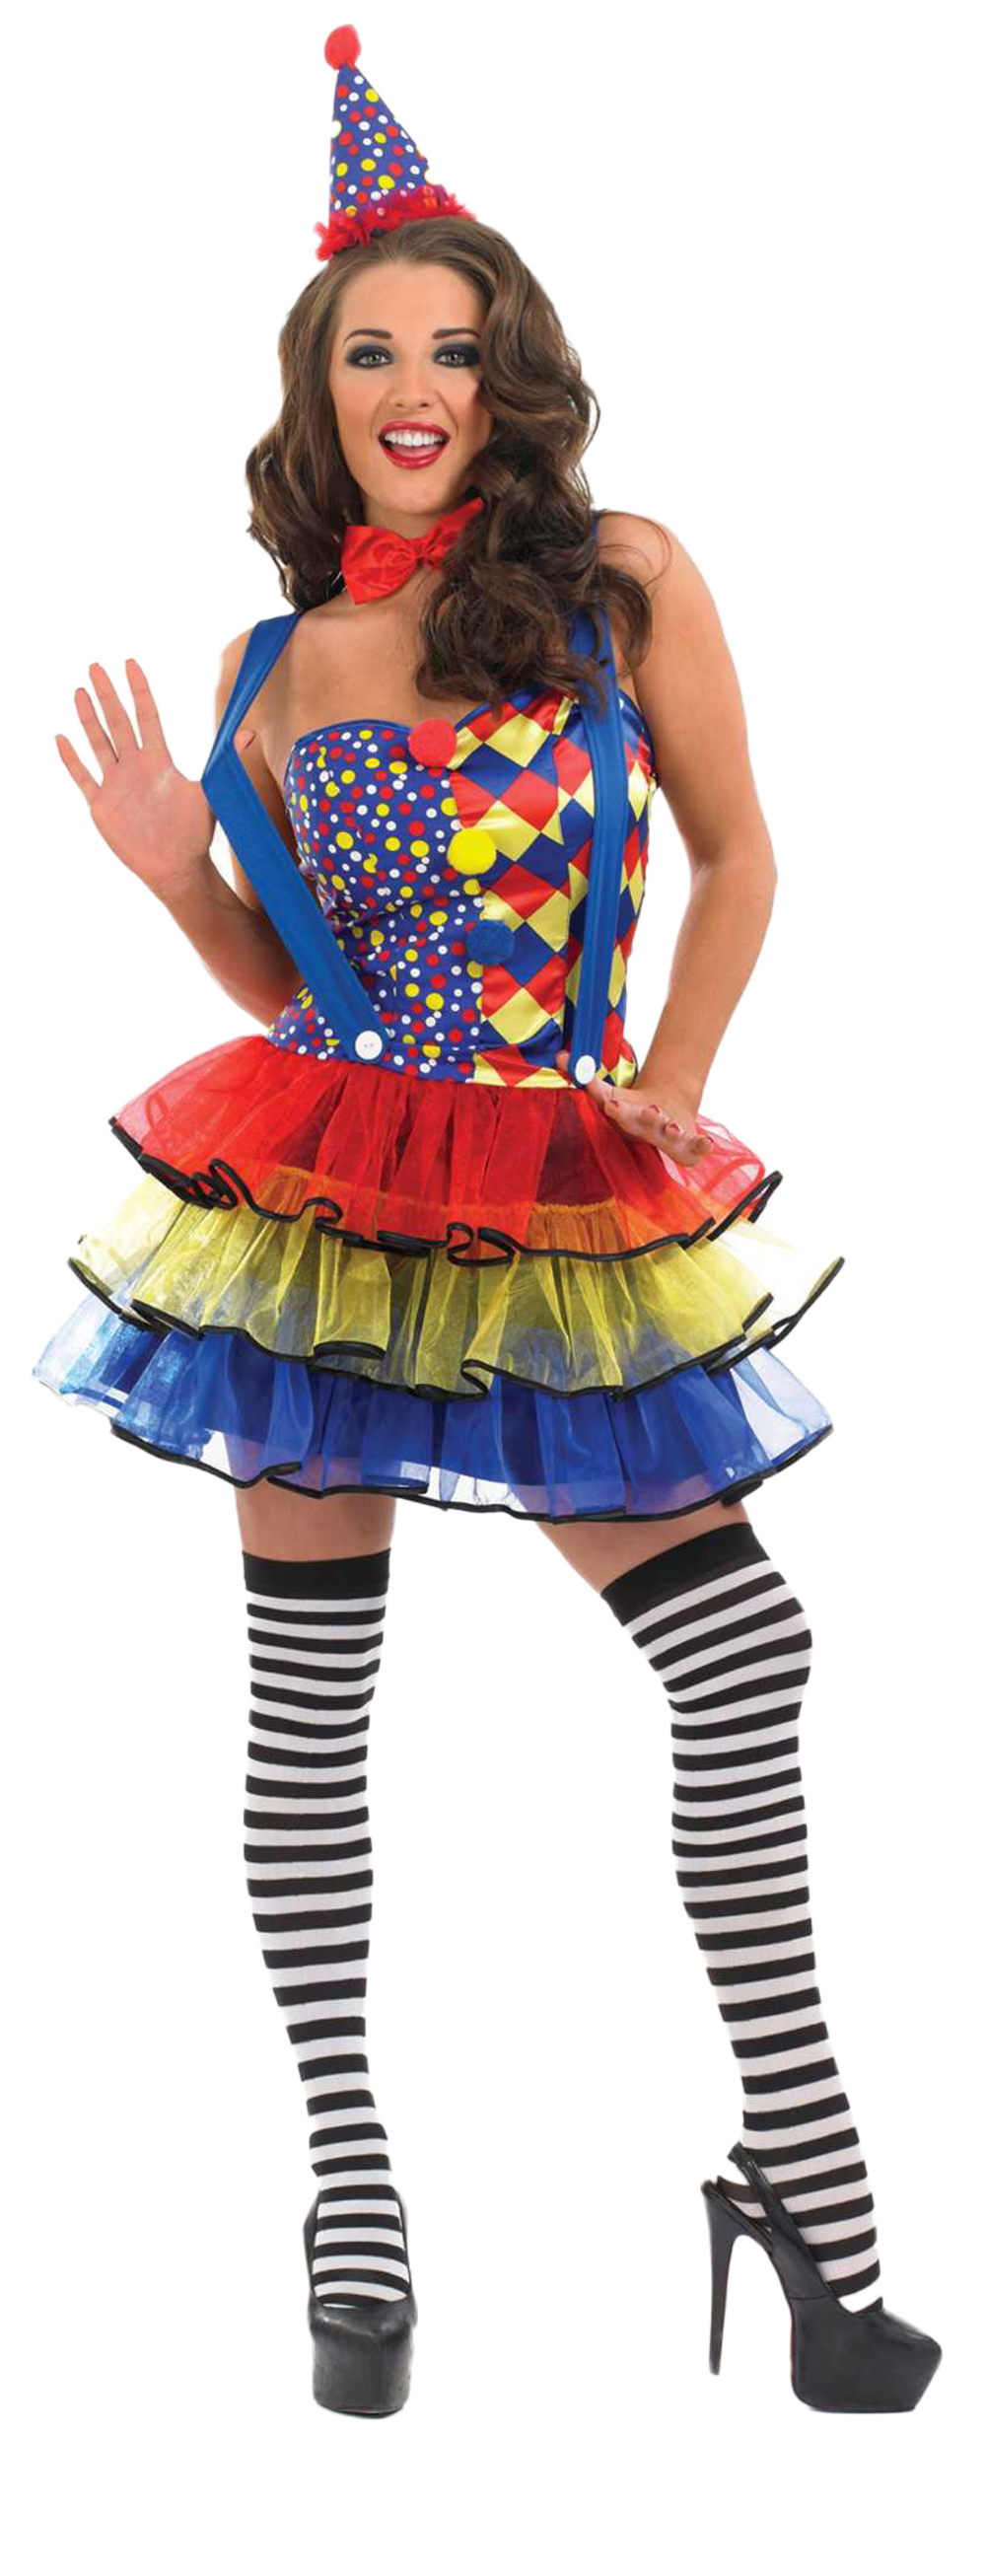 Harley Quinn Jester Clown Circus Costume Outfit Women's Carnival Fancy Dress Costume Halloween # $ $ (30% off) Sale-$10 Over Purchase $89 | -$20 Over Purchase $ We have sent the gift coupon to your Milanoo My Account! Welcome to Milanoo.